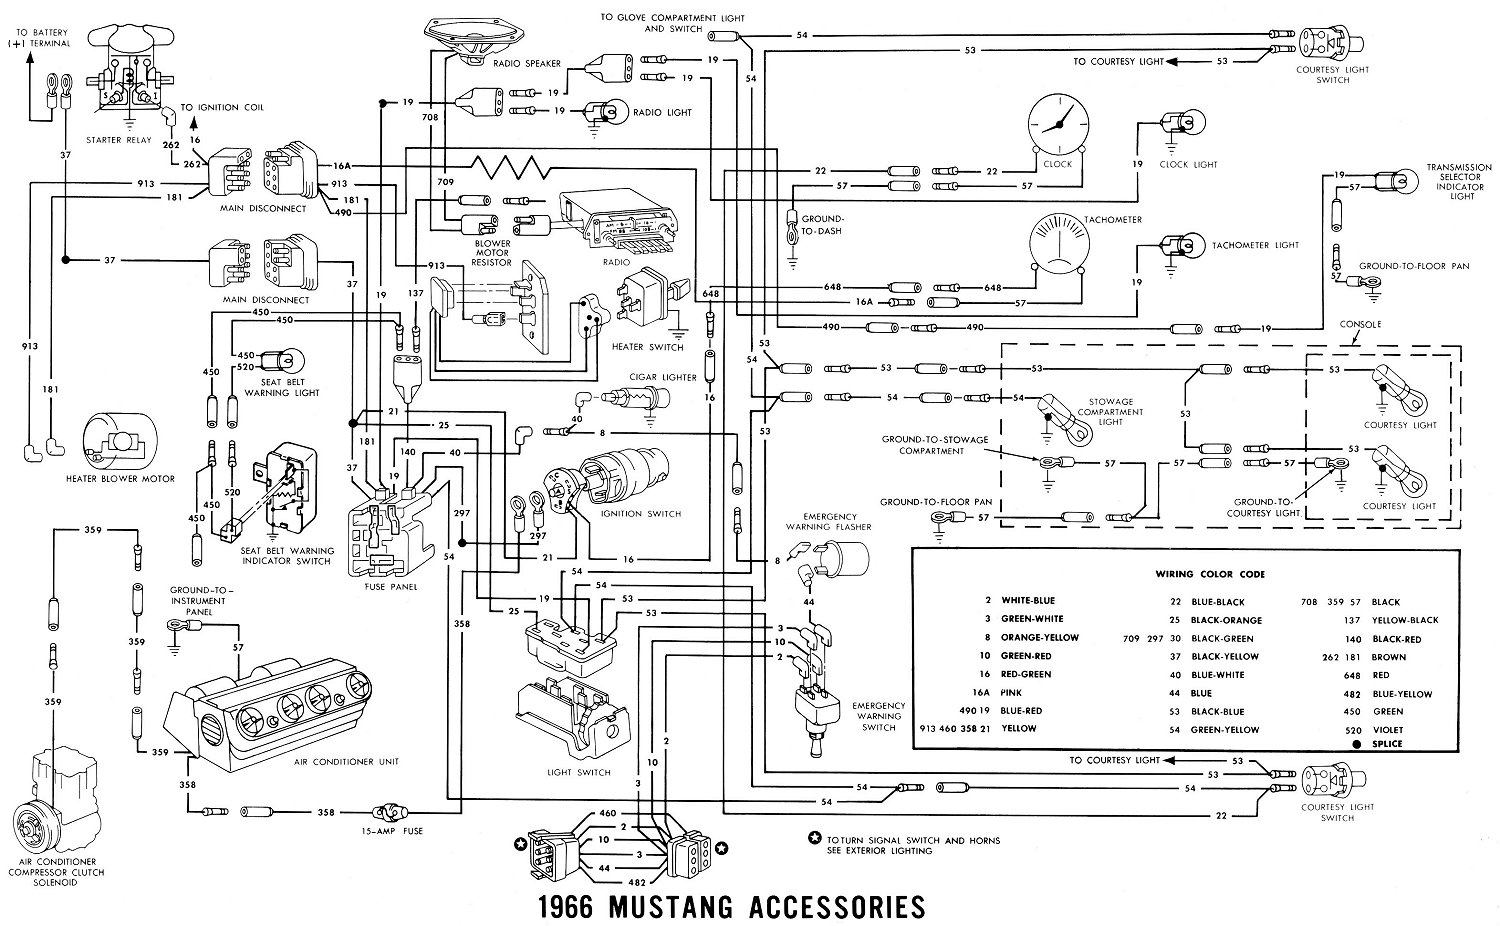 66acces1 1967 mustang under dash wiring diagram wiring diagram and 1965 mustang under dash wiring diagram at love-stories.co